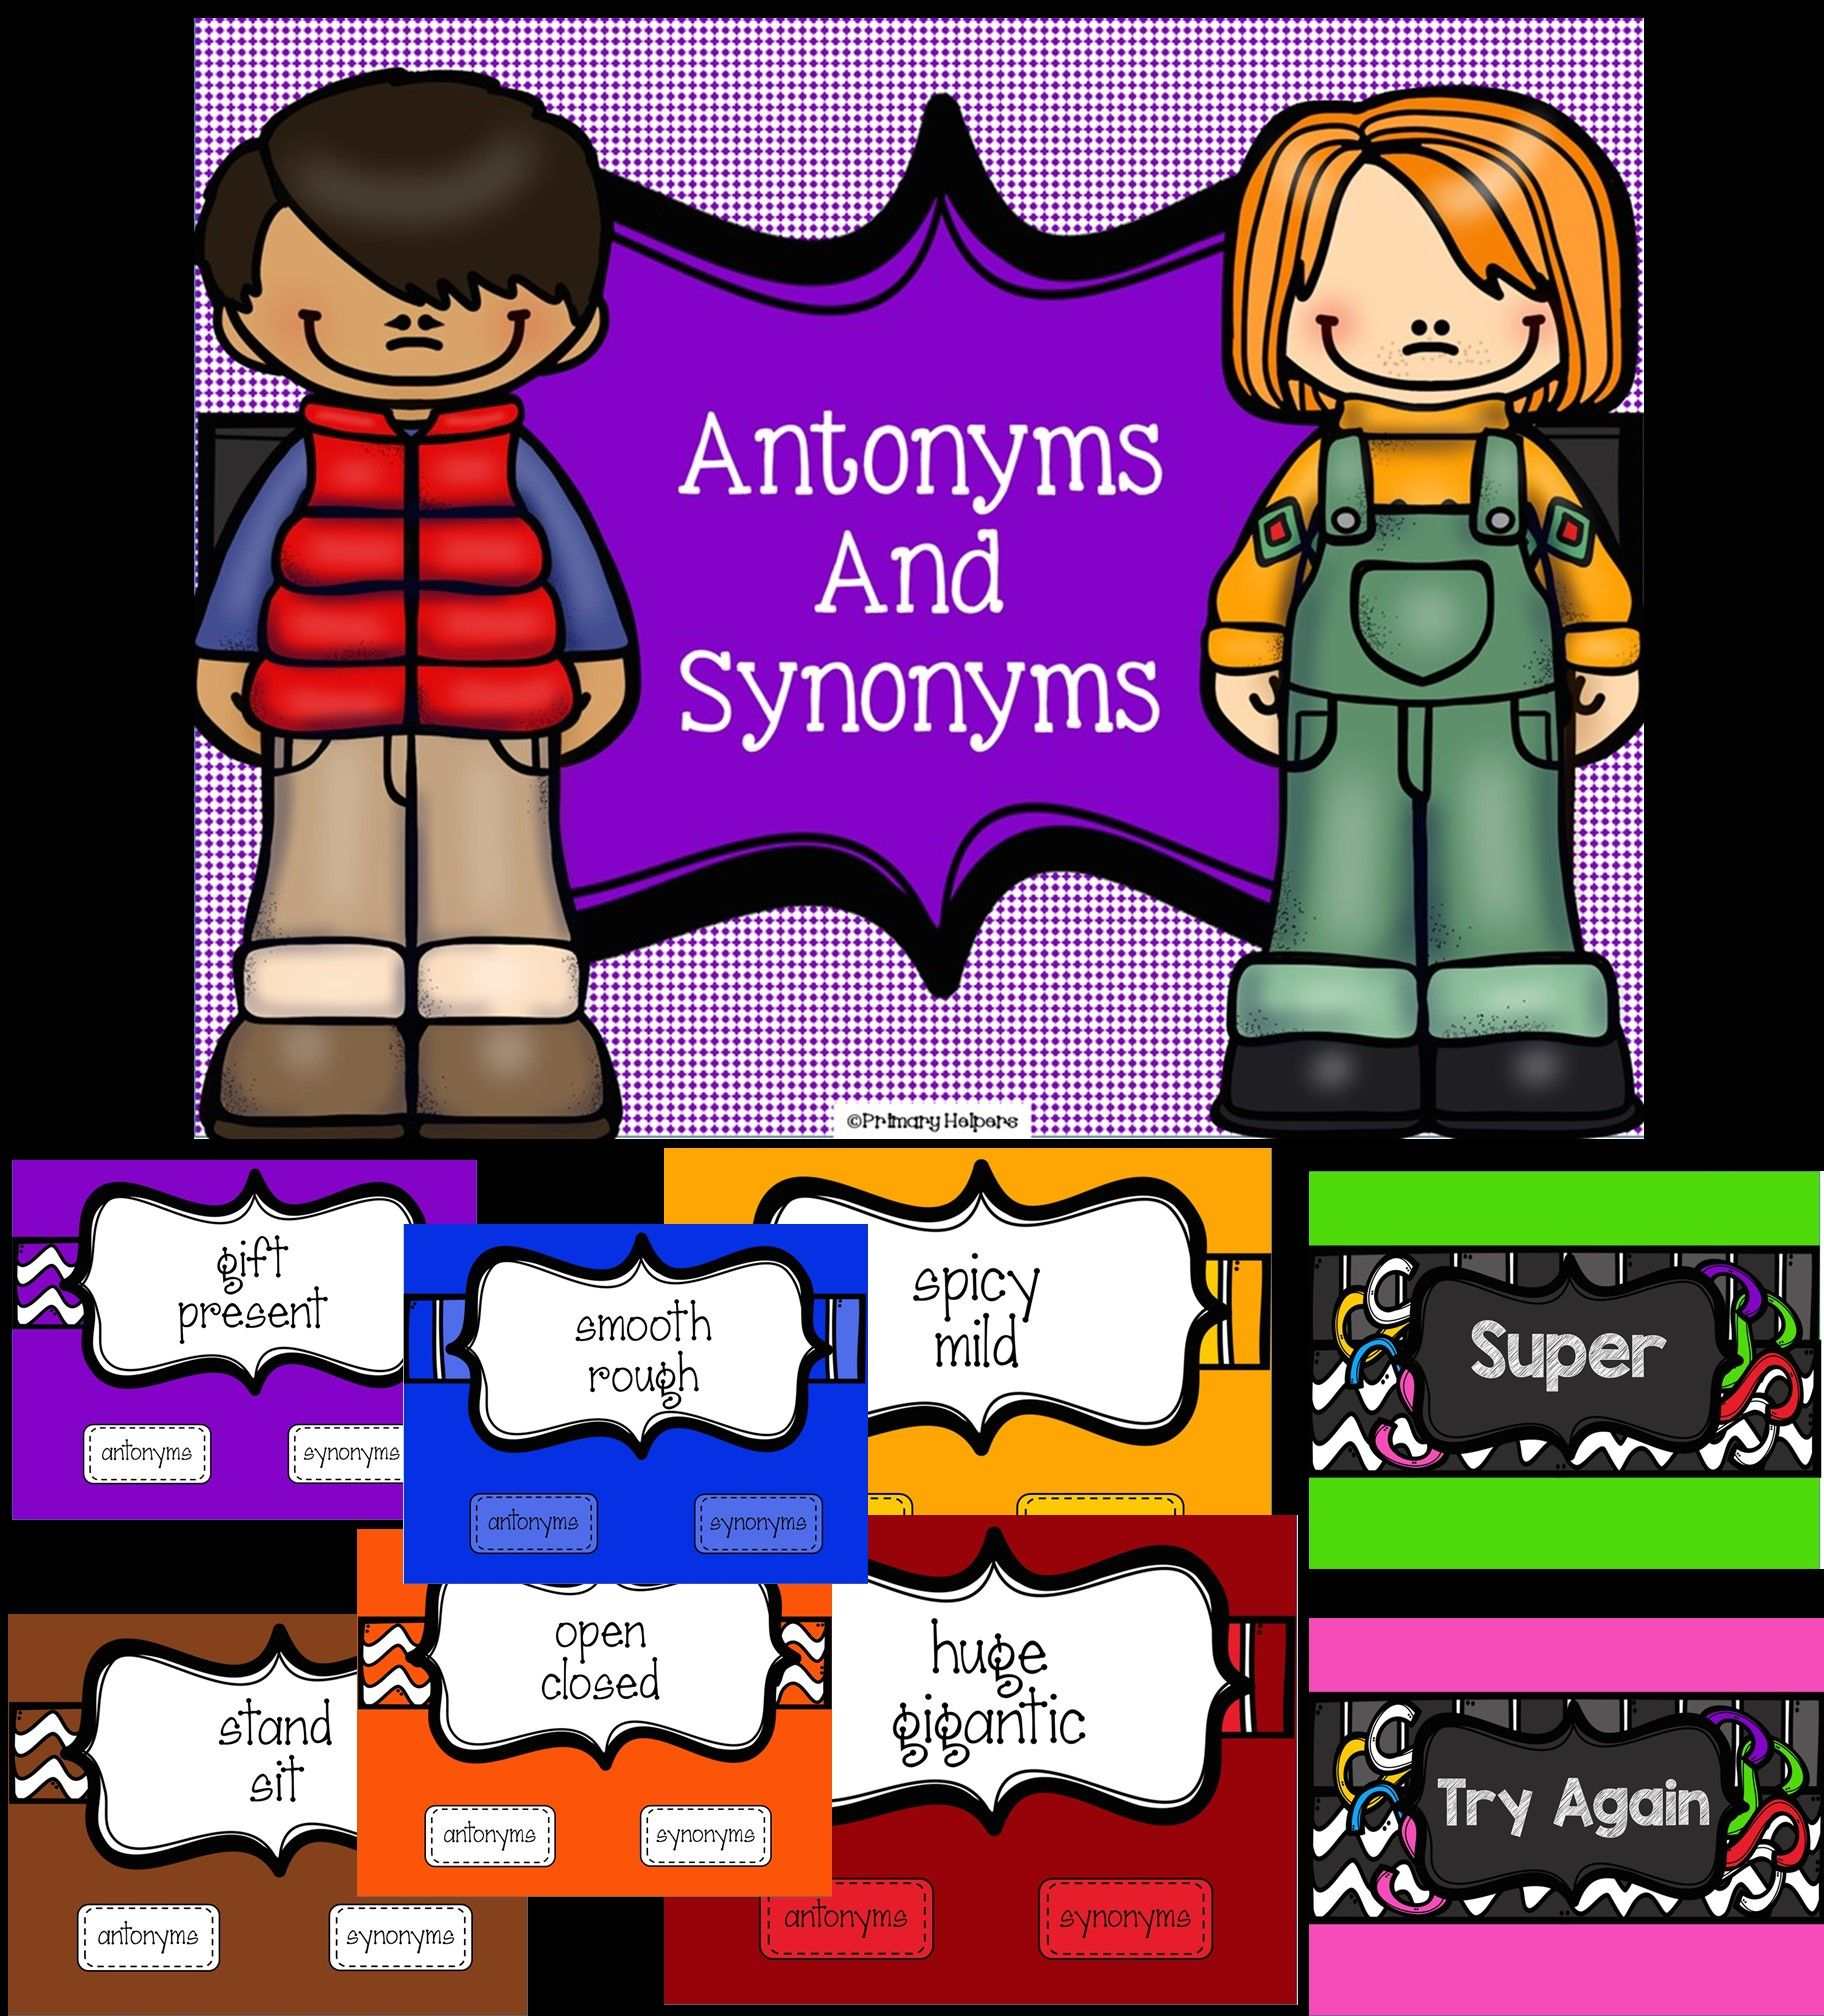 Interactive powerpoint for synonym and antonym review ... - photo#50